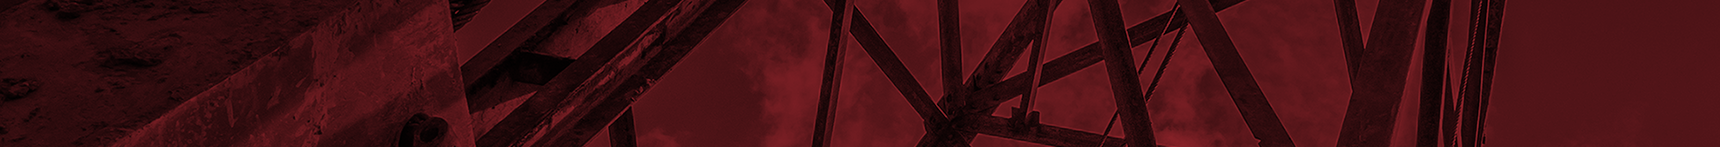 Red footer banner